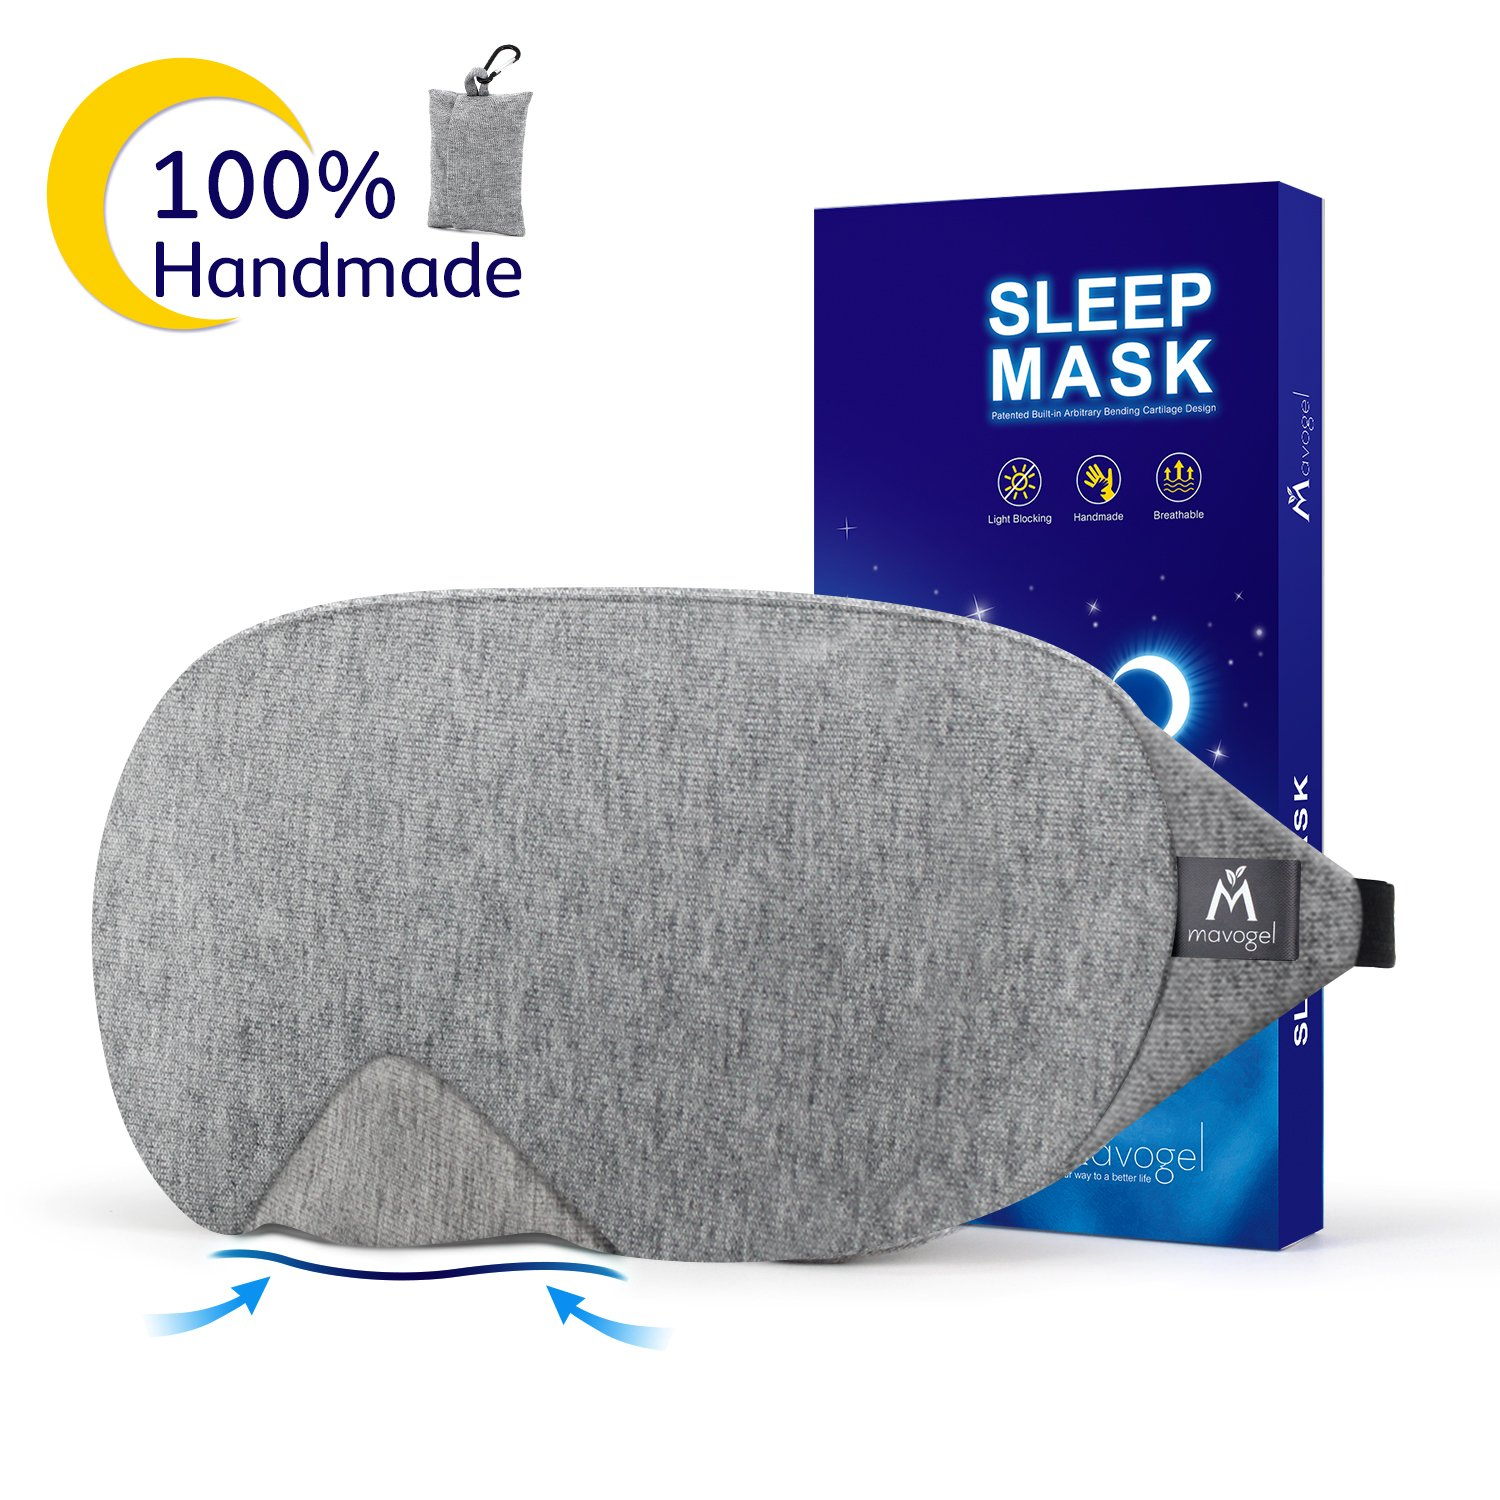 Mavogel Cotton Sleep Eye Mask - Updated Design Light Blocking Sleep Mask, Soft and Comfortable Night Eye Mask for Men Women, Eye Blinder for Travel/Sleeping/Shift Work, Includes Travel Pouch, Grey sleep masks Sleep masks for women – 5 best sleep masks for women on the market 81scG9t6hlL